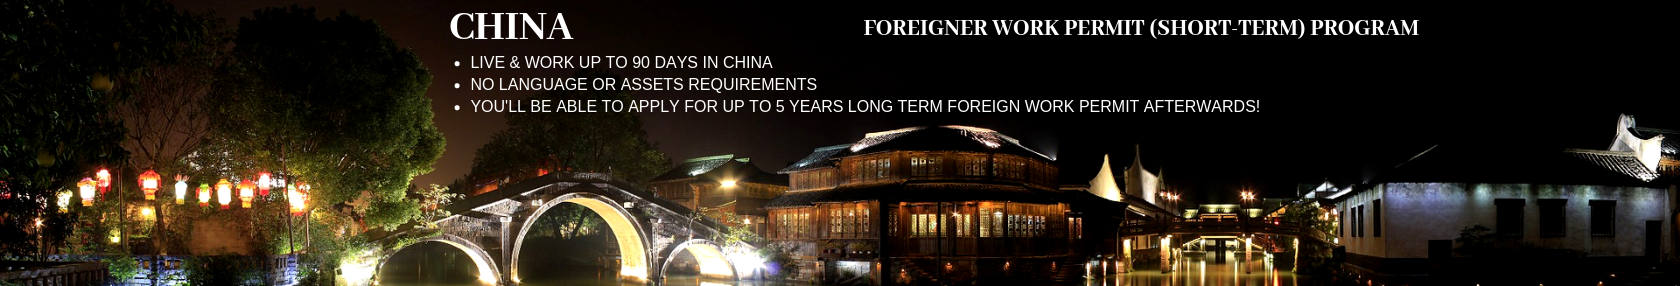 China, Foreigner Work Permit (Short-term)